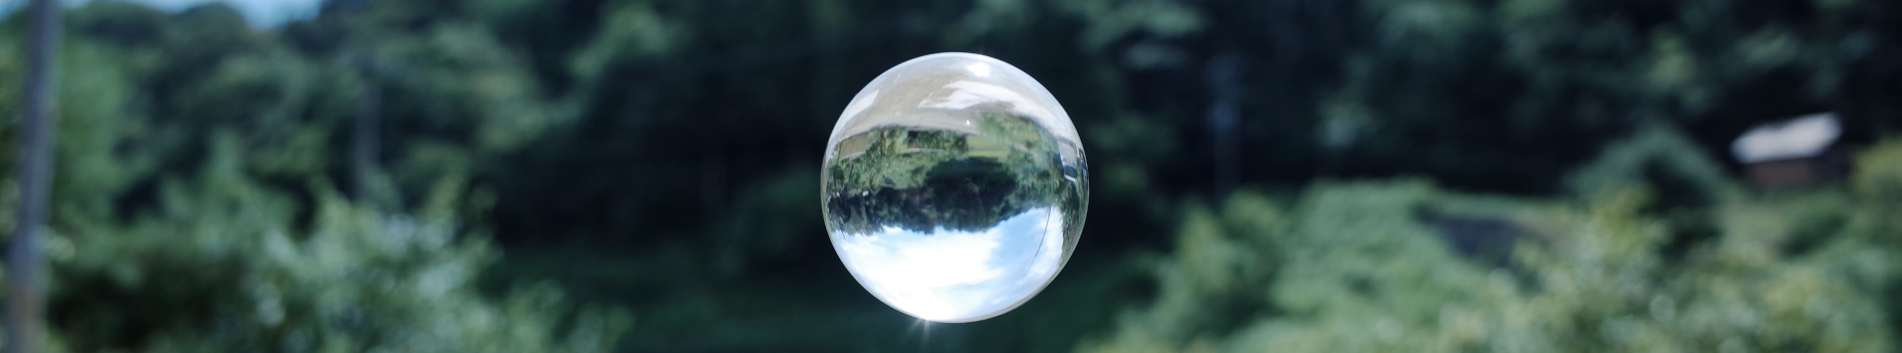 Augar, The Humanities, Covid: Gazing into the Crystal Ball feature image